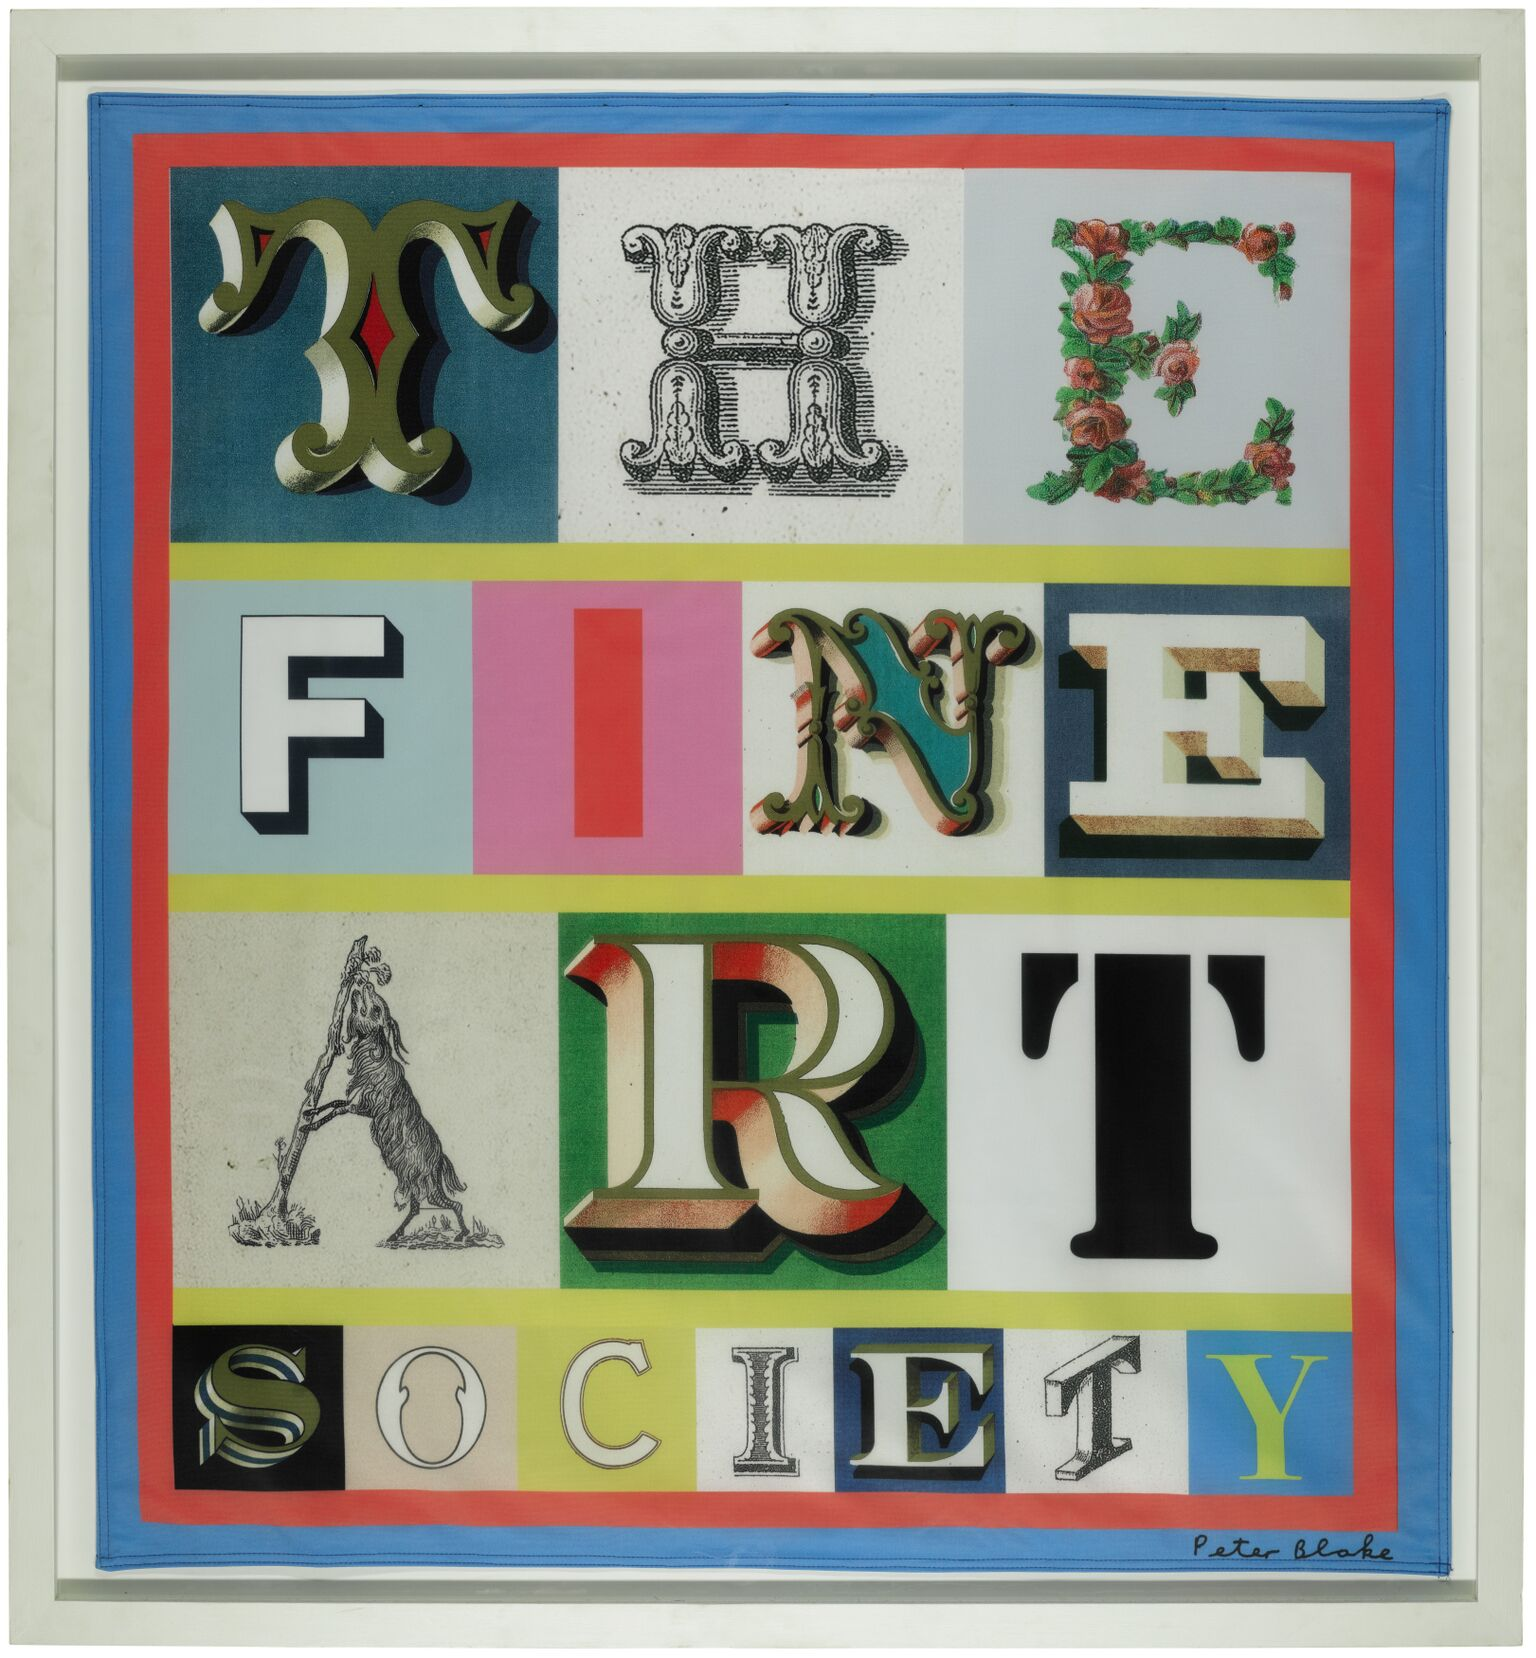 'The Fine Art Society' by Sir Peter Blake